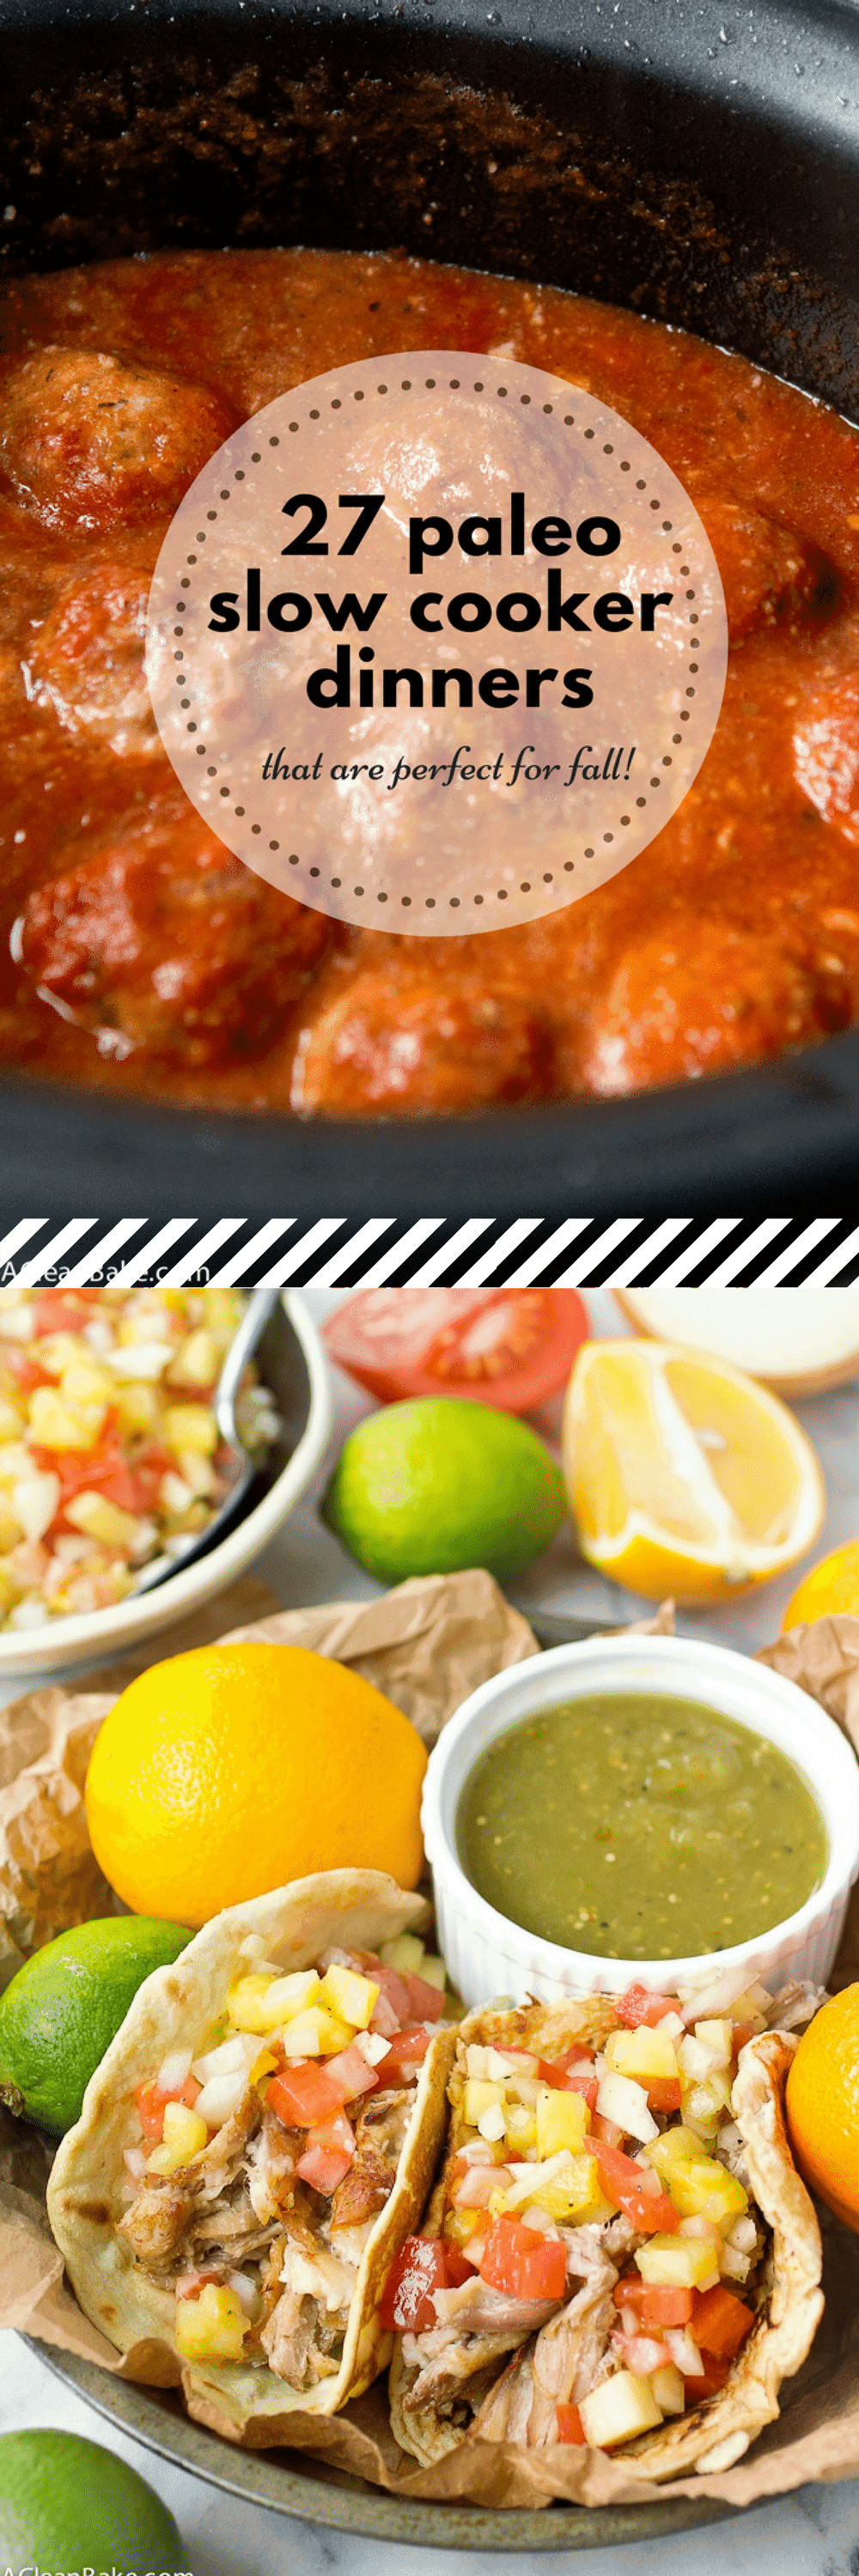 Healthy Paleo Slow Cooker Recipes for Dinner This Fall #glutenfree #paleo #dinner #slowcooker #easy #recipes #crockpot #lowcarb #whole30